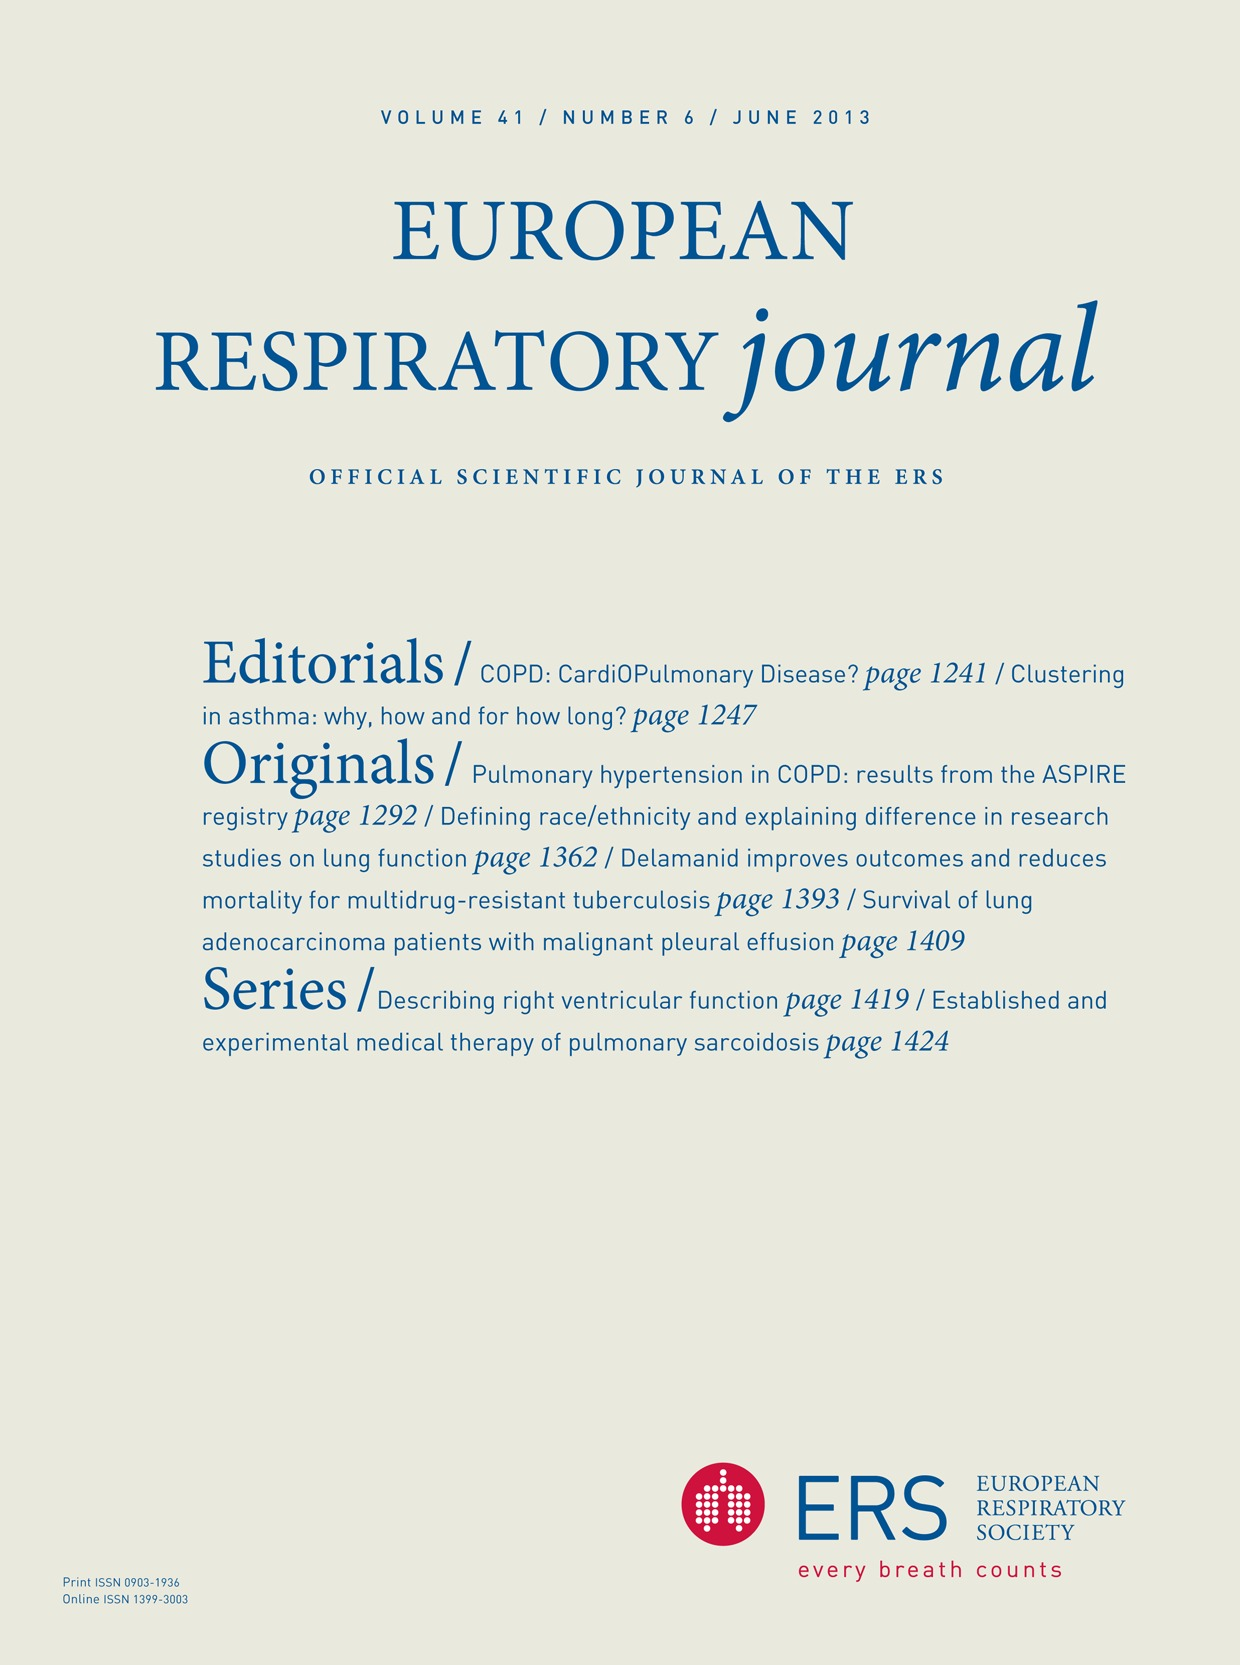 Established and experimental medical therapy of pulmonary